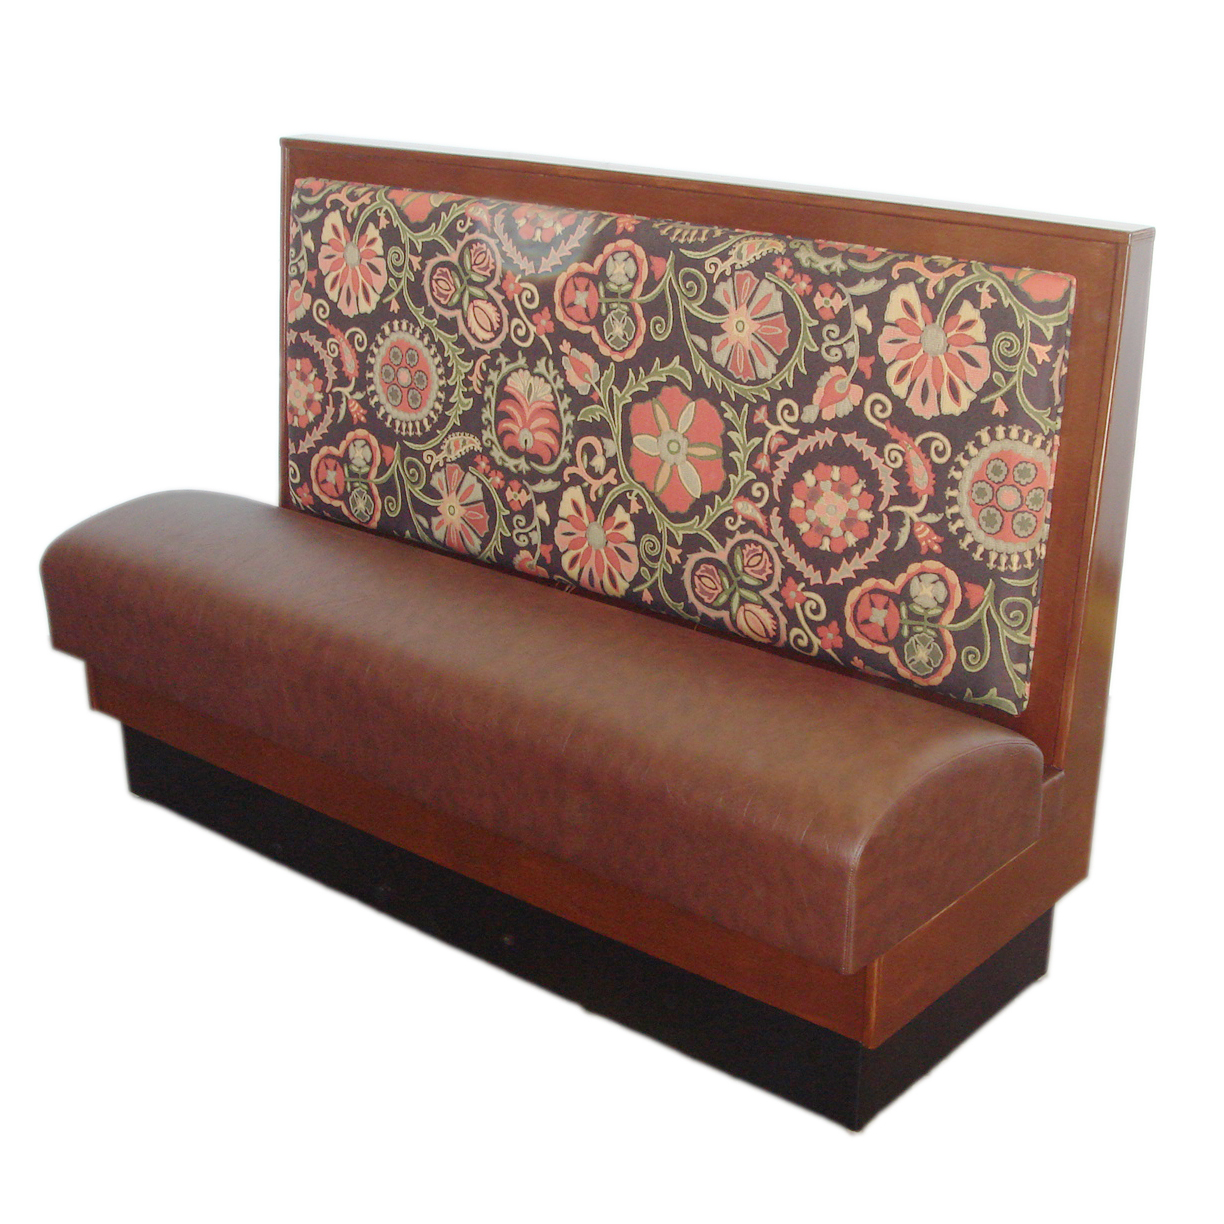 AAA Furniture Wholesale NO48S GR4 booth